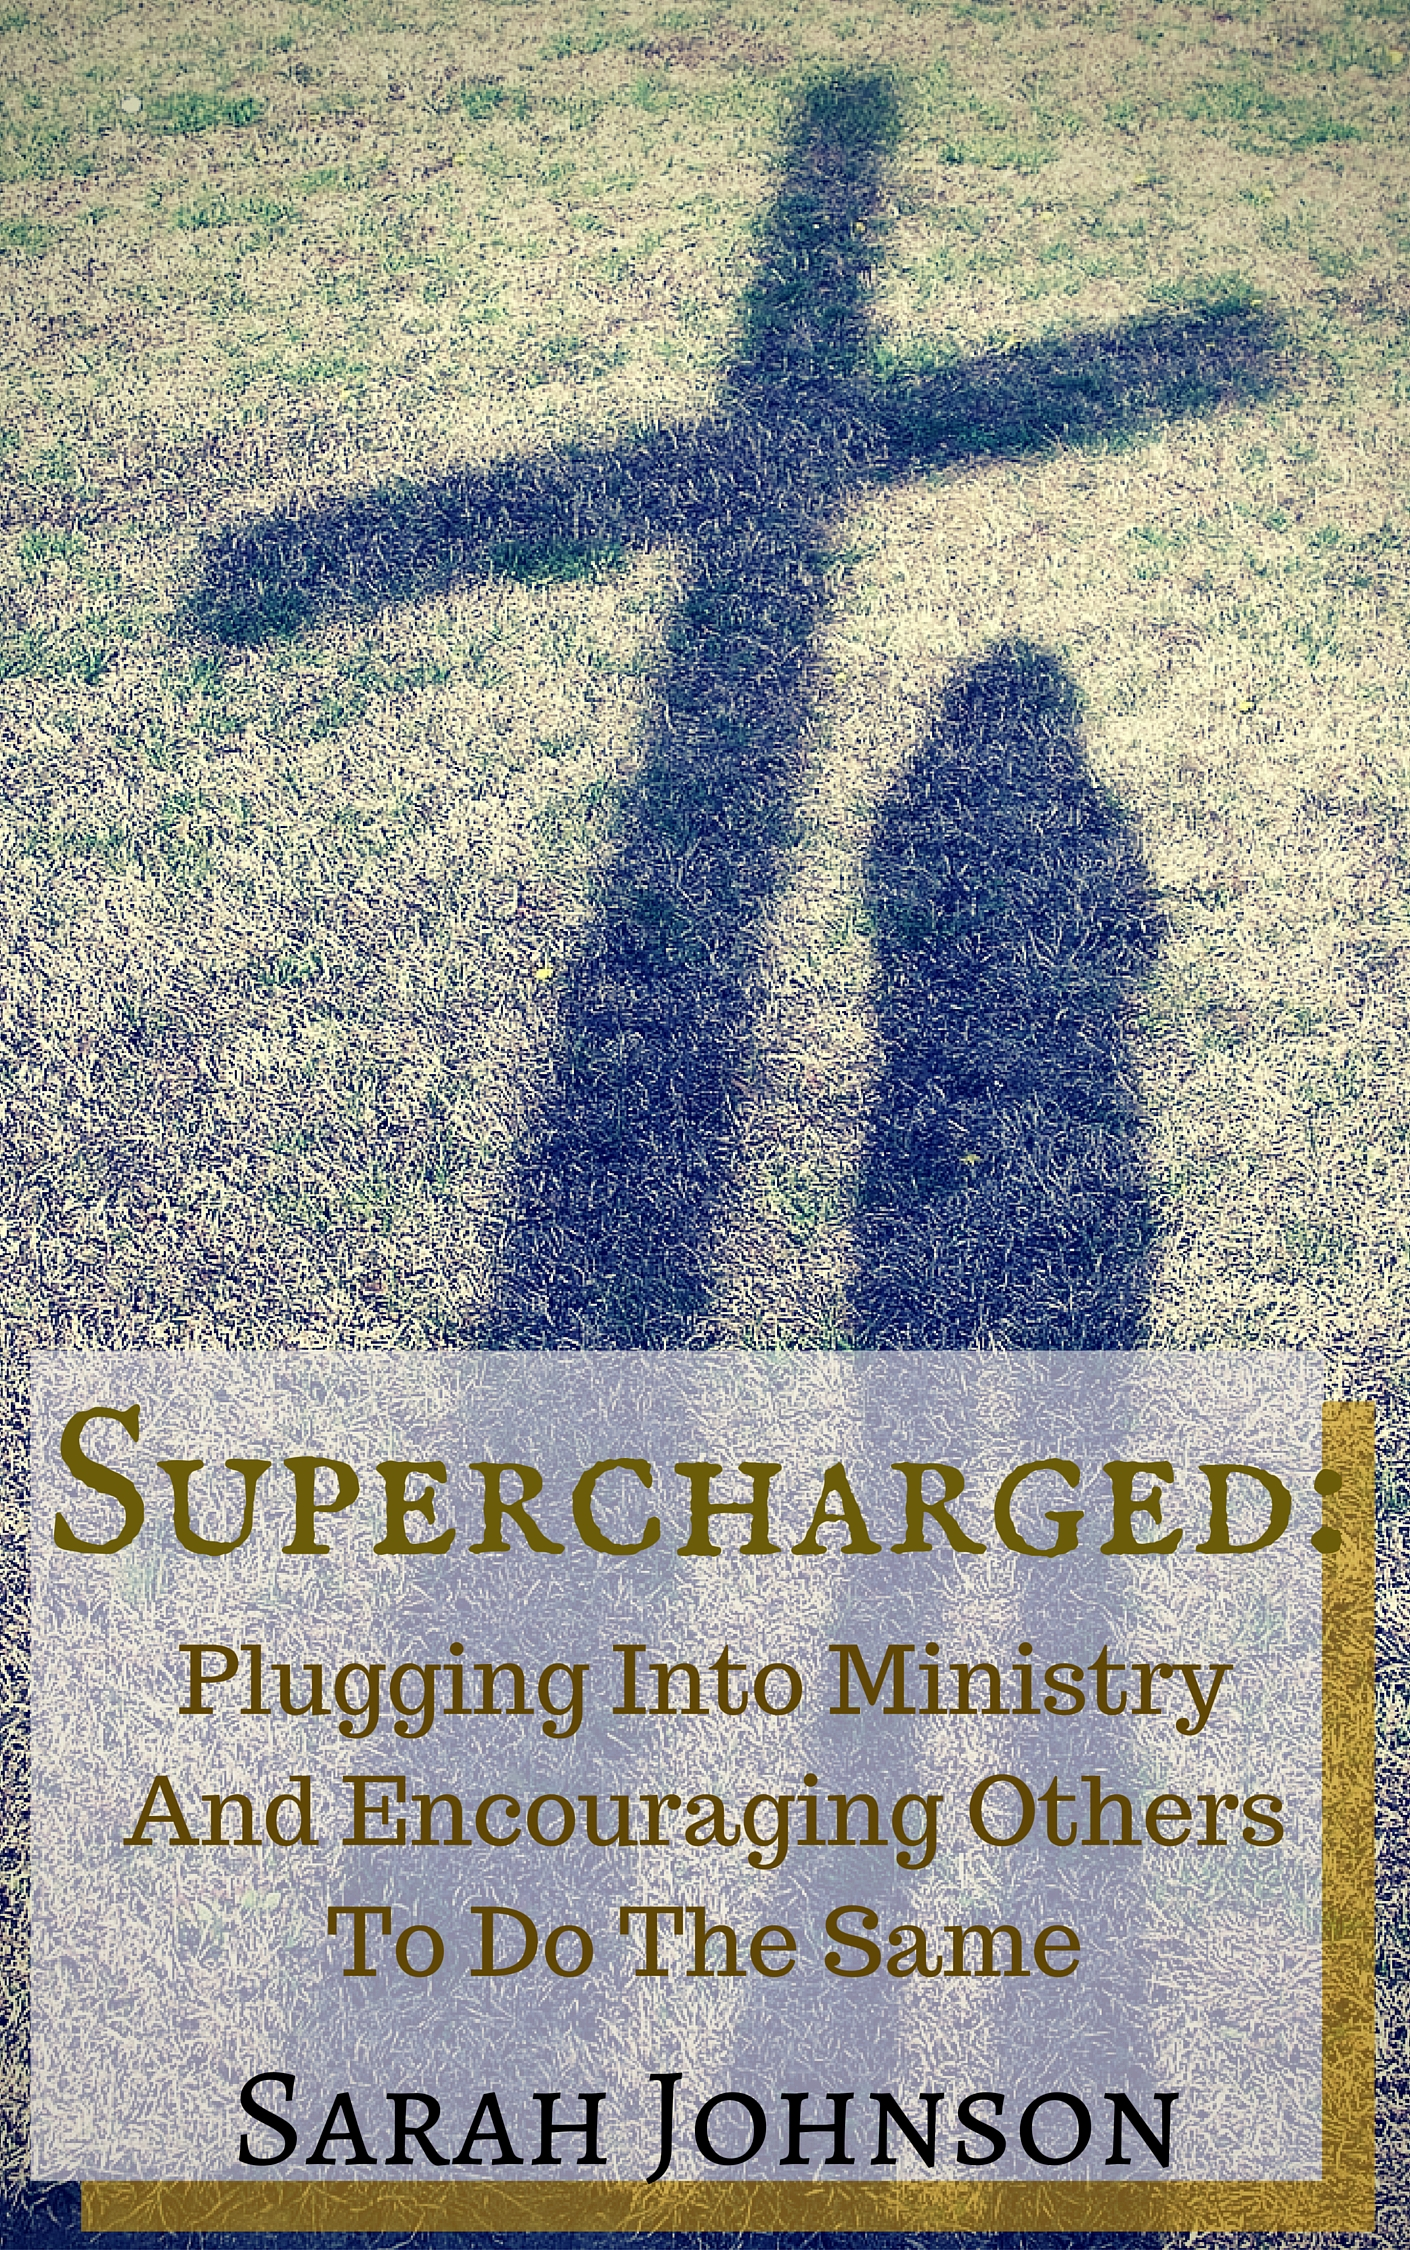 Super Charged (1)